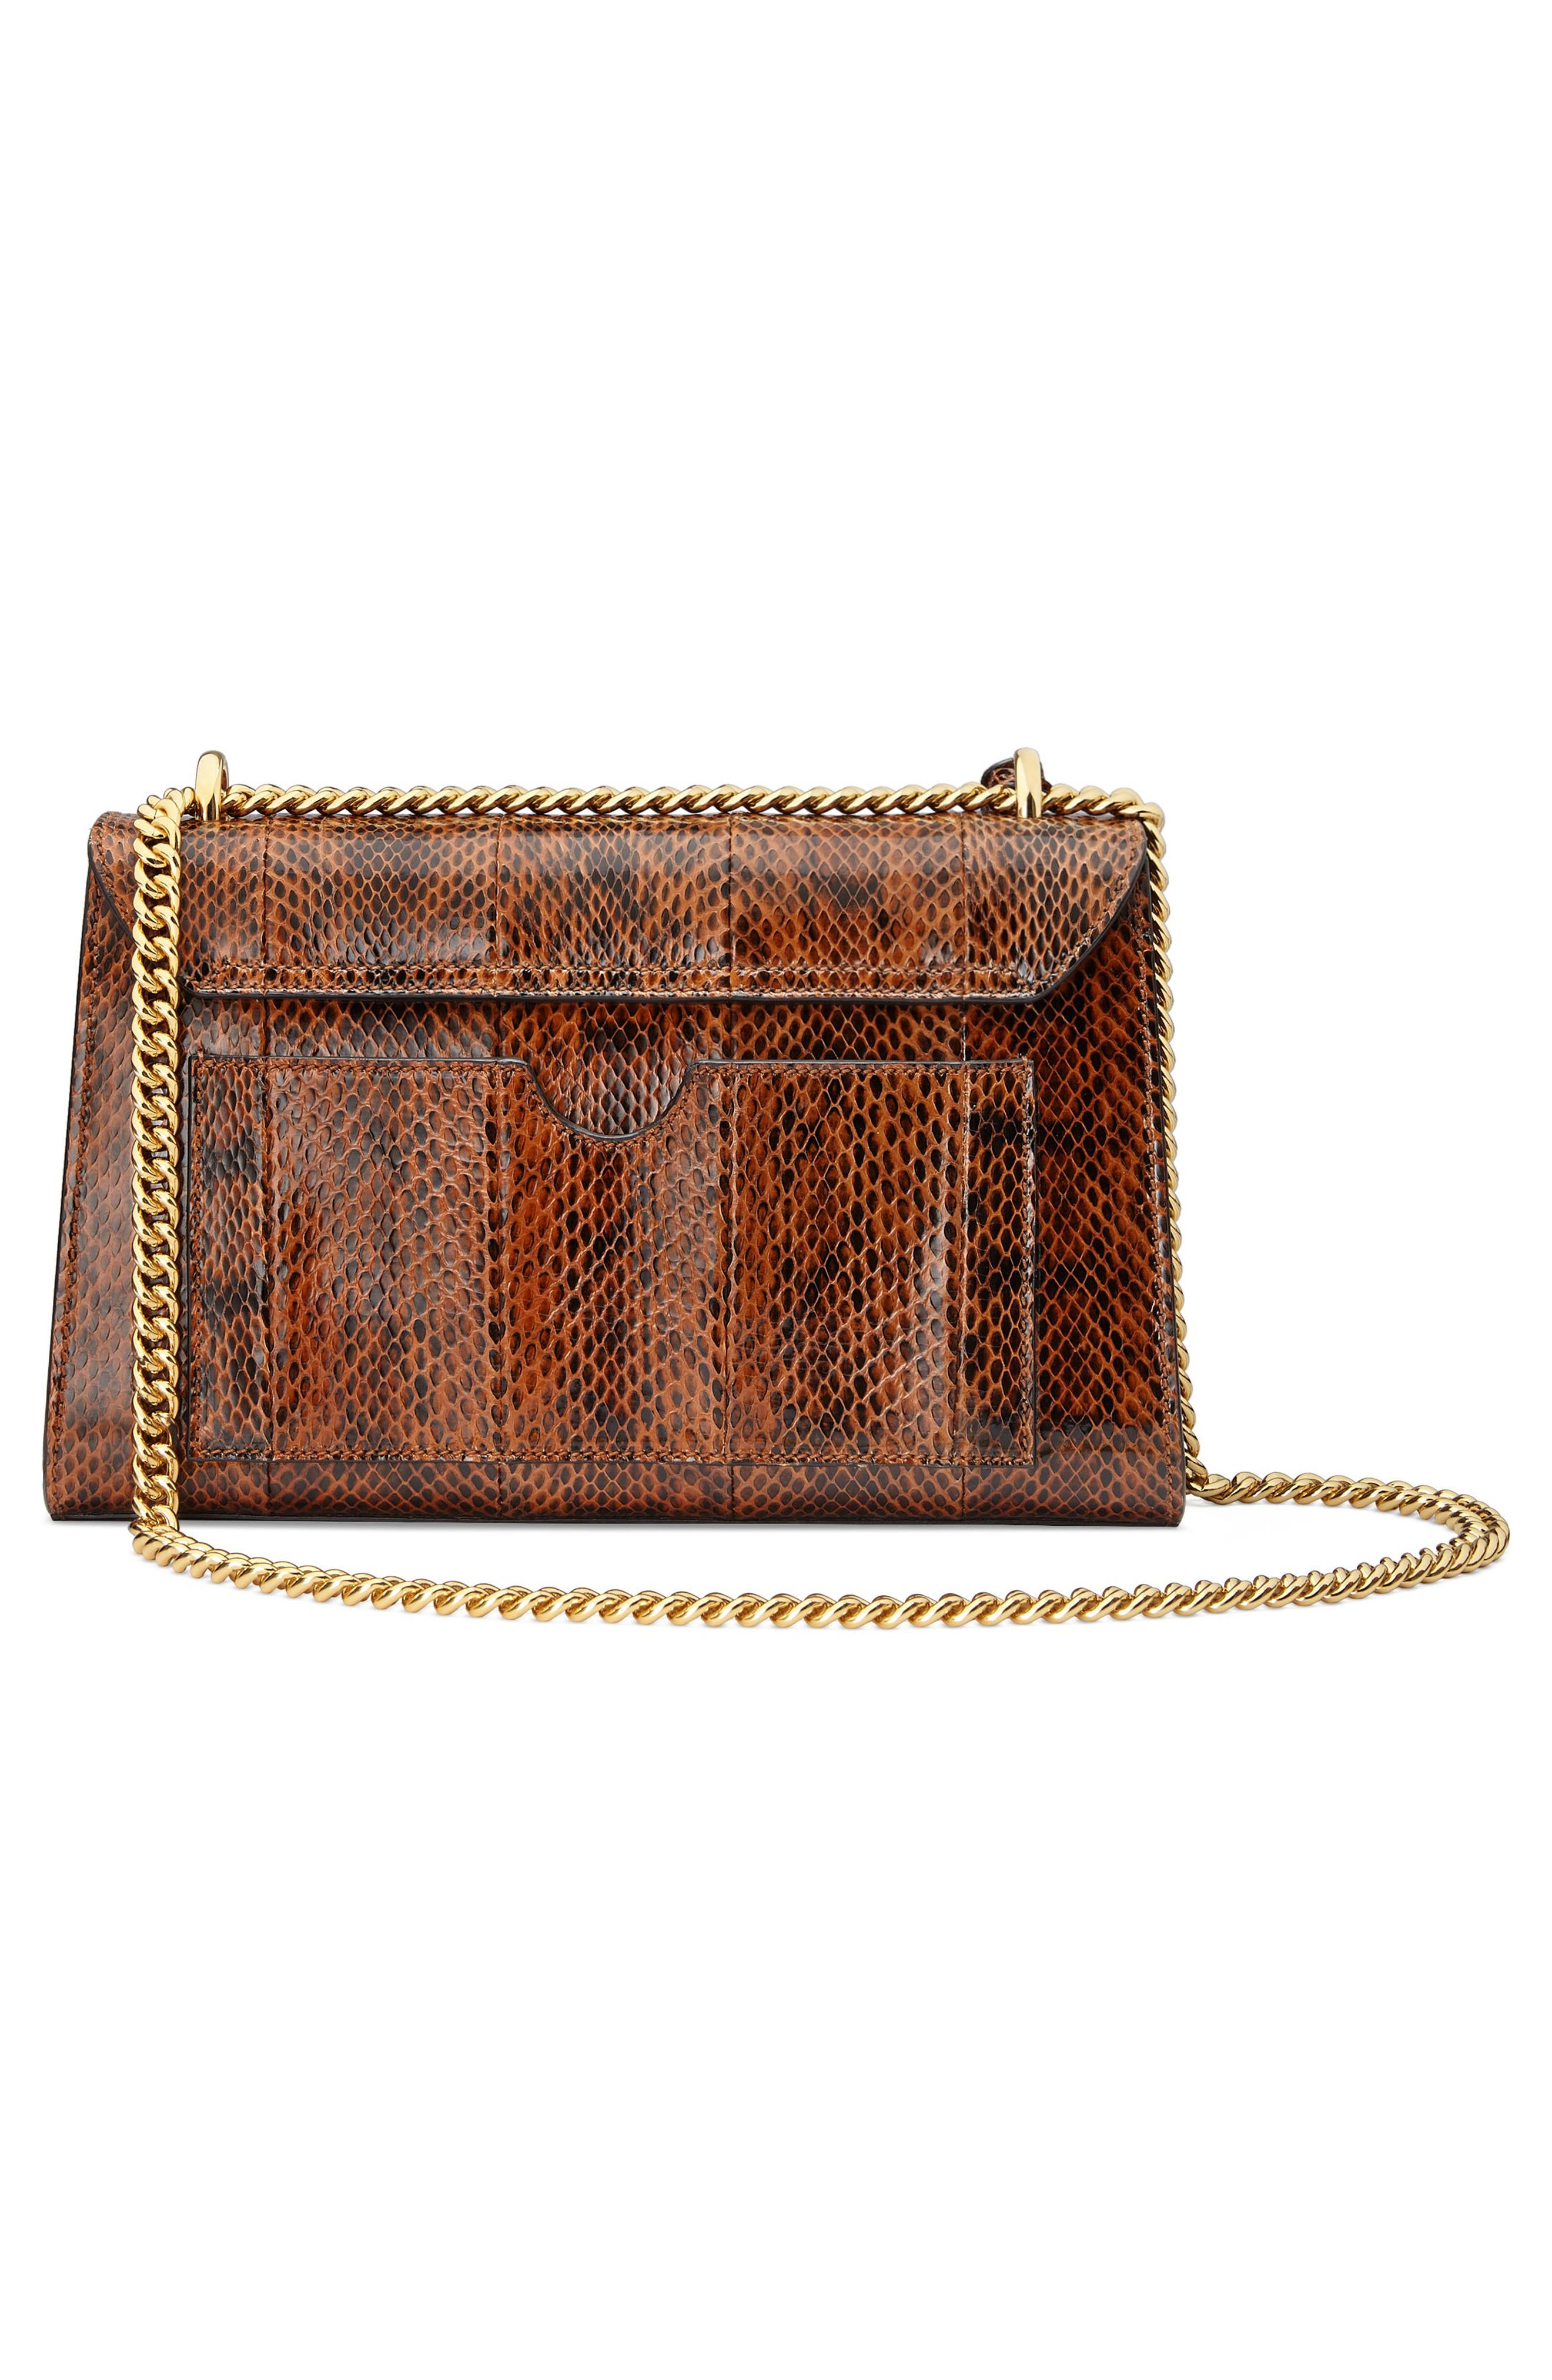 Medium Padlock - Elaphe Genuine Snakeskin Shoulder Bag,                             Alternate thumbnail 2, color,                             BRIGHT CUIR